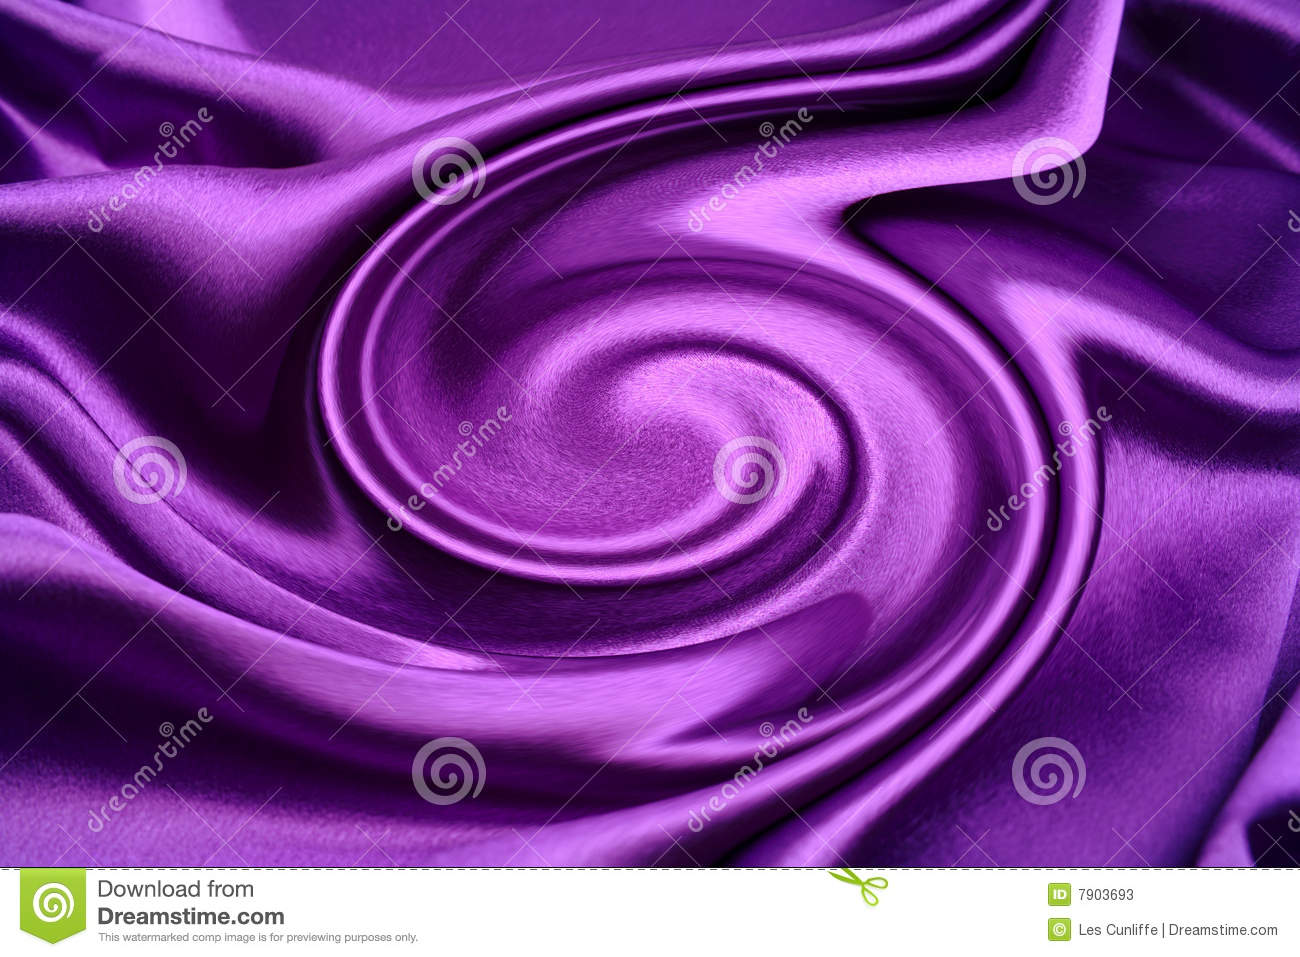 purple swirl background stock - photo #2